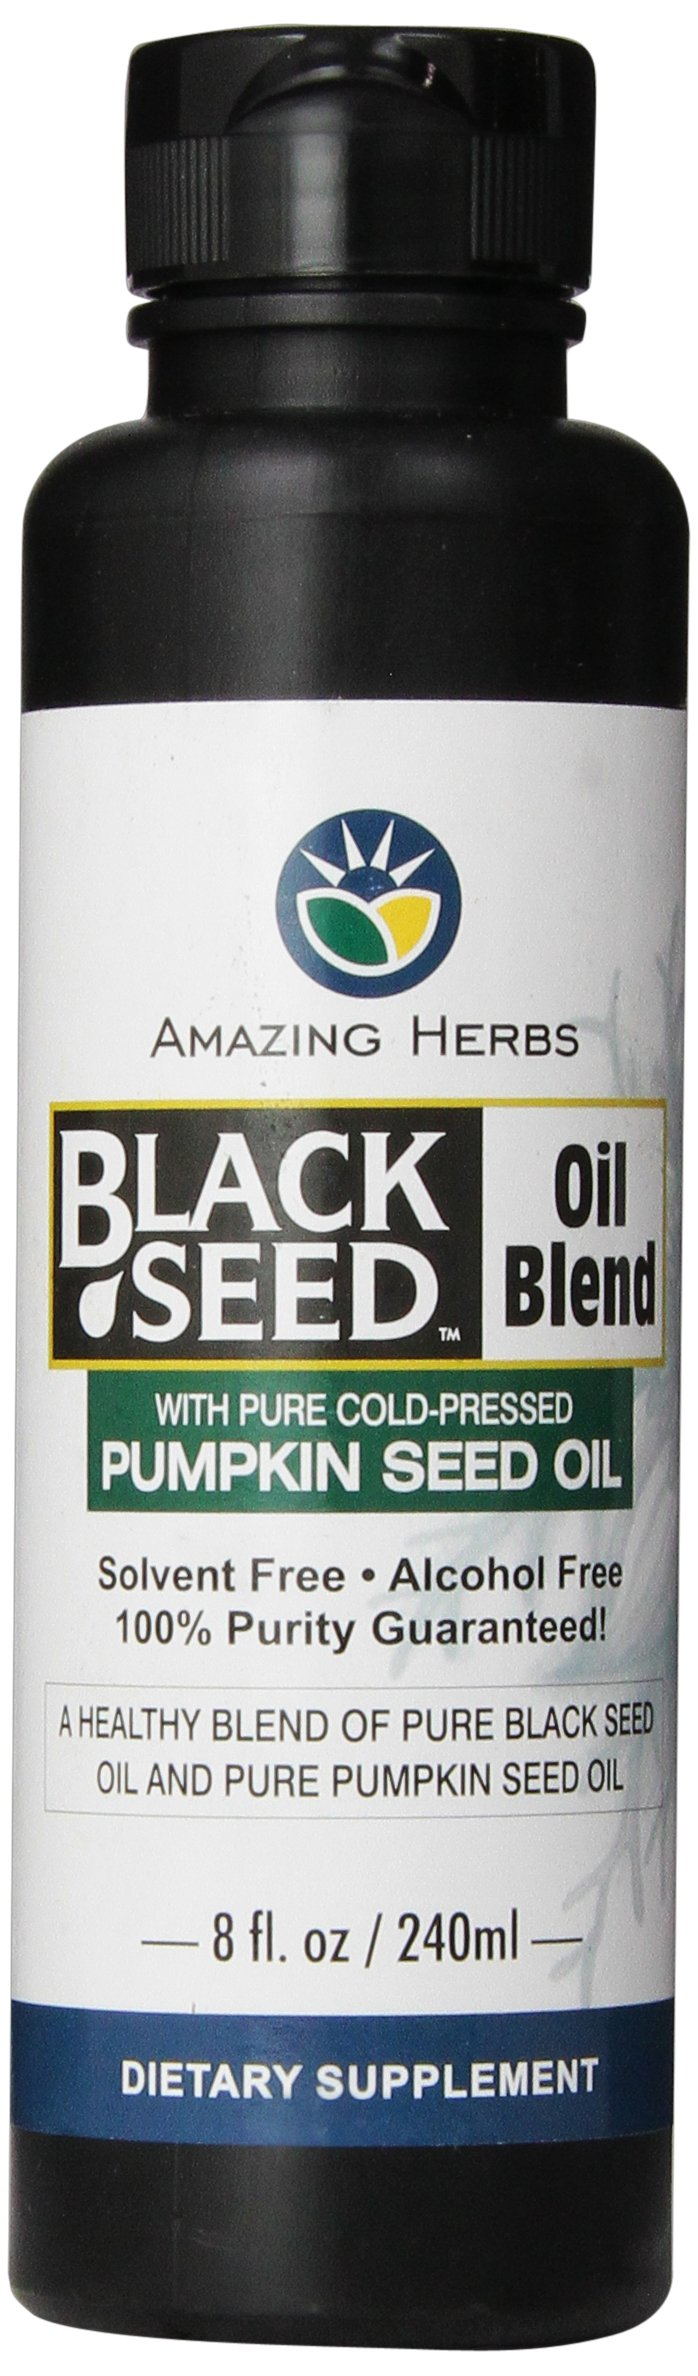 Amazing Herbs Black Seed and Pumpkin Seed Oil Blend, 8 Fluid Ounce